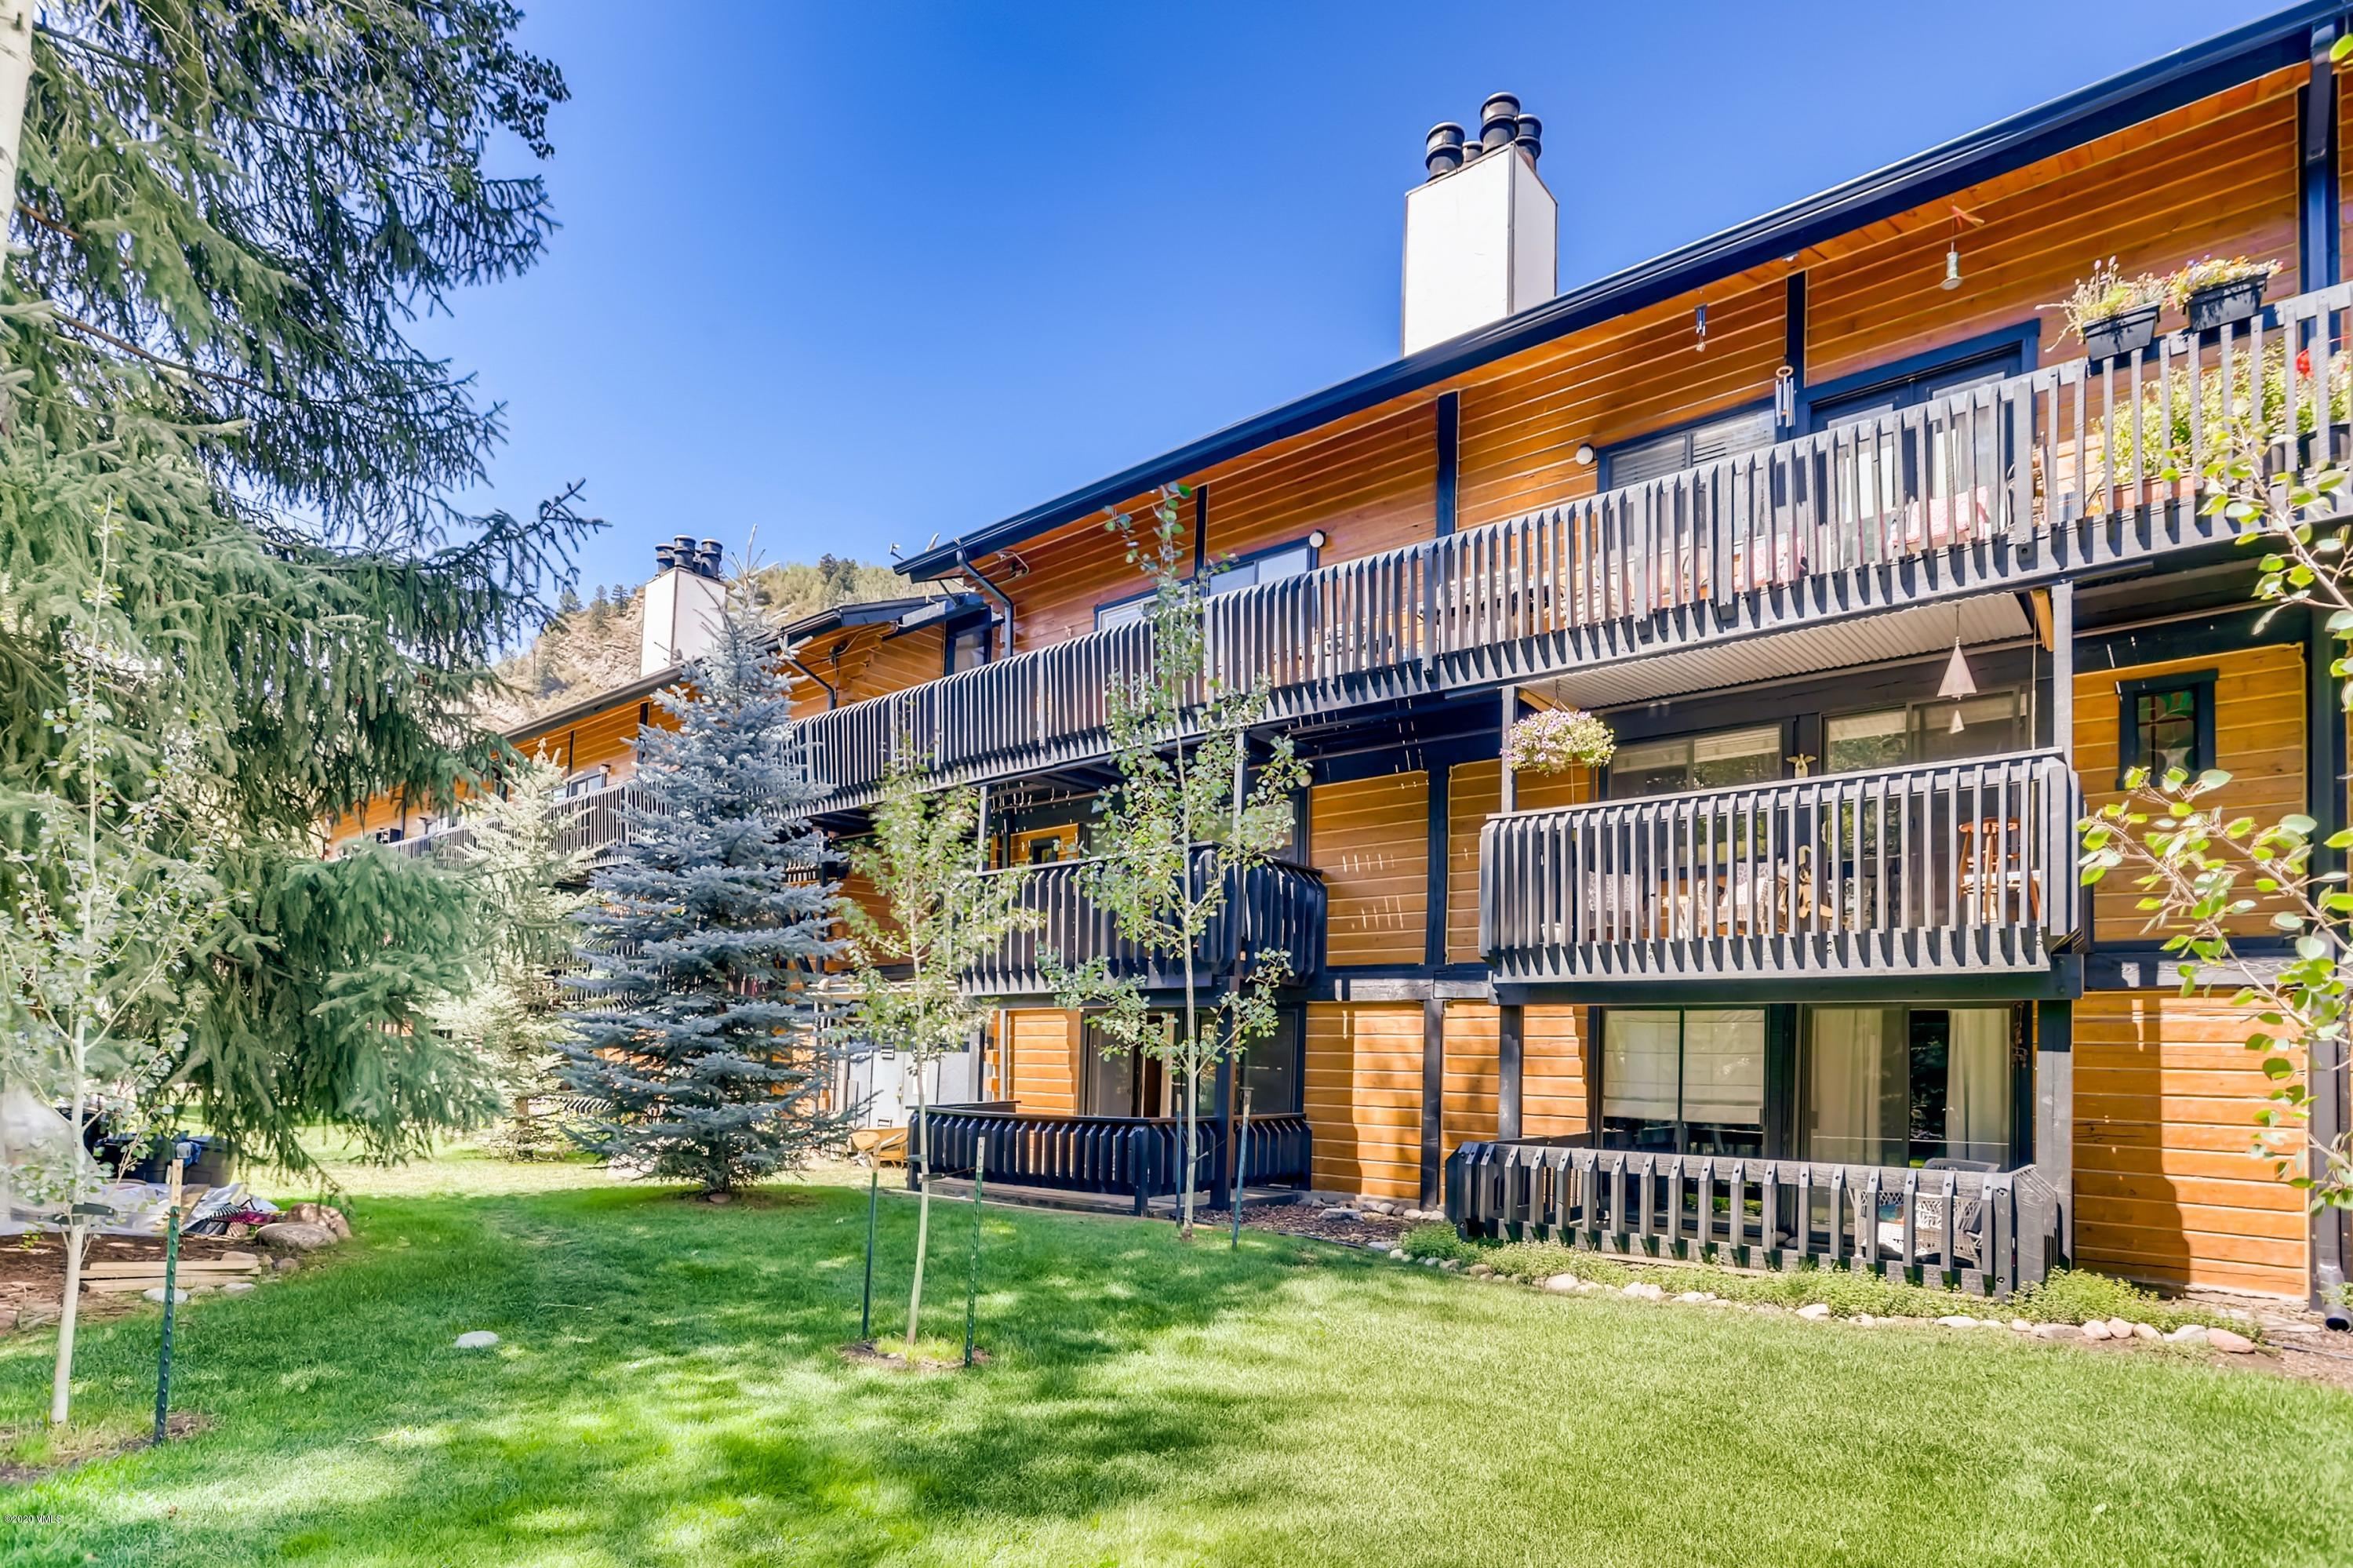 This recently remodeled 2 bed 2 bath 924 sqft condo in West Vail South is located in the serene area of Intermountain. Enjoy long summer days on one of two large decks and cold winter nights in front of the wood burning fireplace. This modern designed condo with scenic mountain views offers worry free living as association dues include heat, internet, cable, snow removal, water and sewer. An assigned carport will help eliminate the hassle of having to remove snow from your car in the winter. Don't want to drive? No problem. The free bus stop is just 50 feet away. New energy efficient windows will keep you warm in the winter and the sliding door in each of the two bedrooms will keep you cool in the summer. The in-unit washer and dryer enhance the convenience of this remodeled condo. A new kitchen and appliances will further enhance you living experience. With permitted short term rental, this condo also makes a great investment. Call today to schedule your private showing.